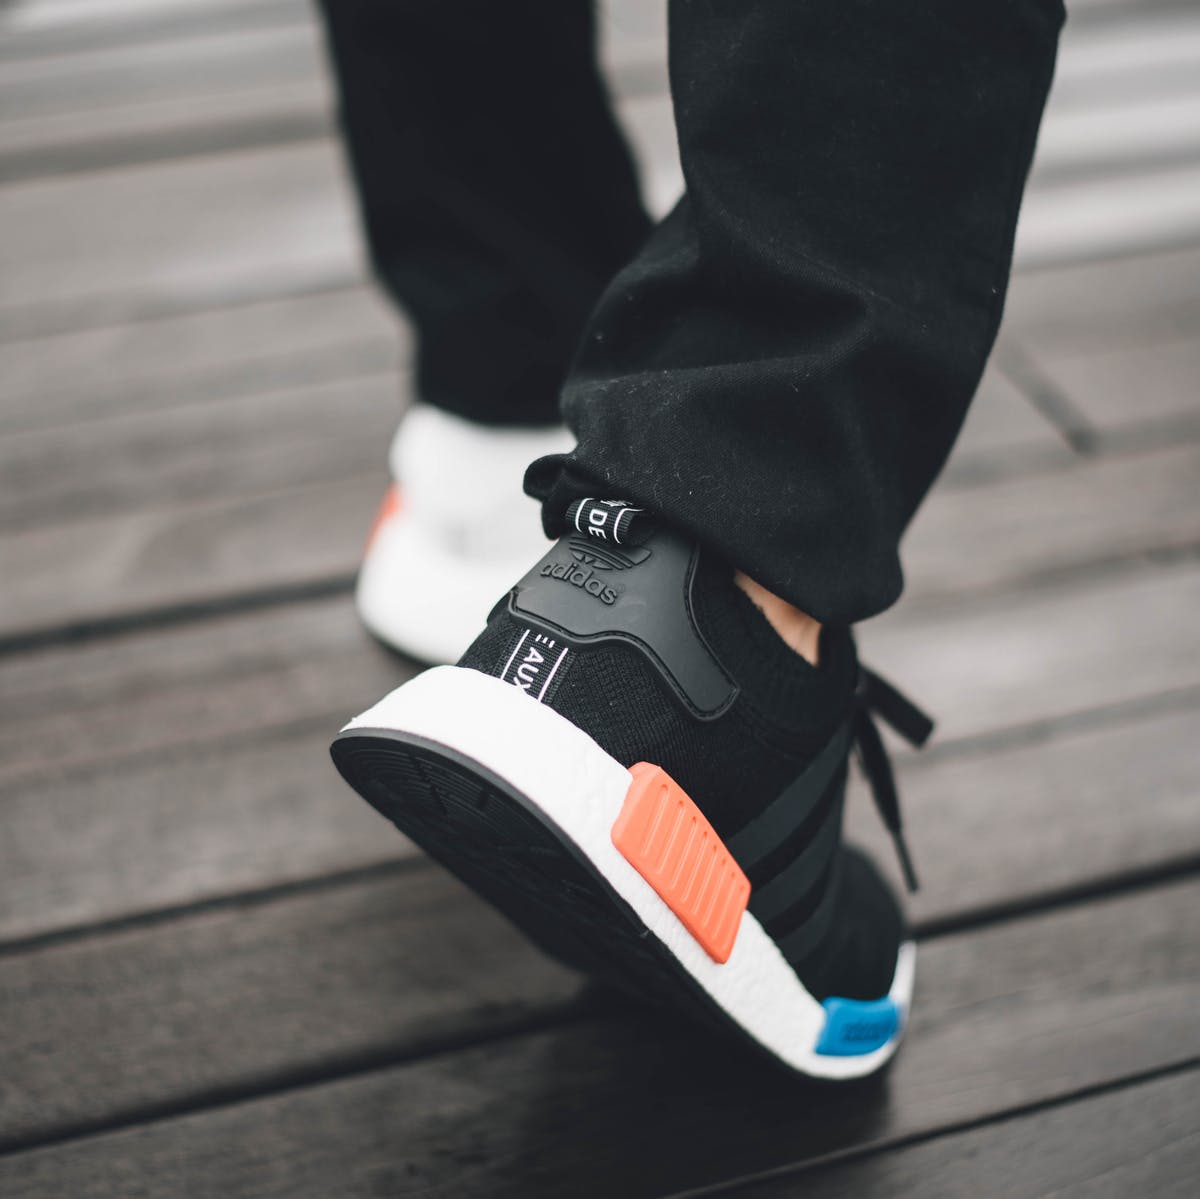 The Best Sneakers for Standing All Day